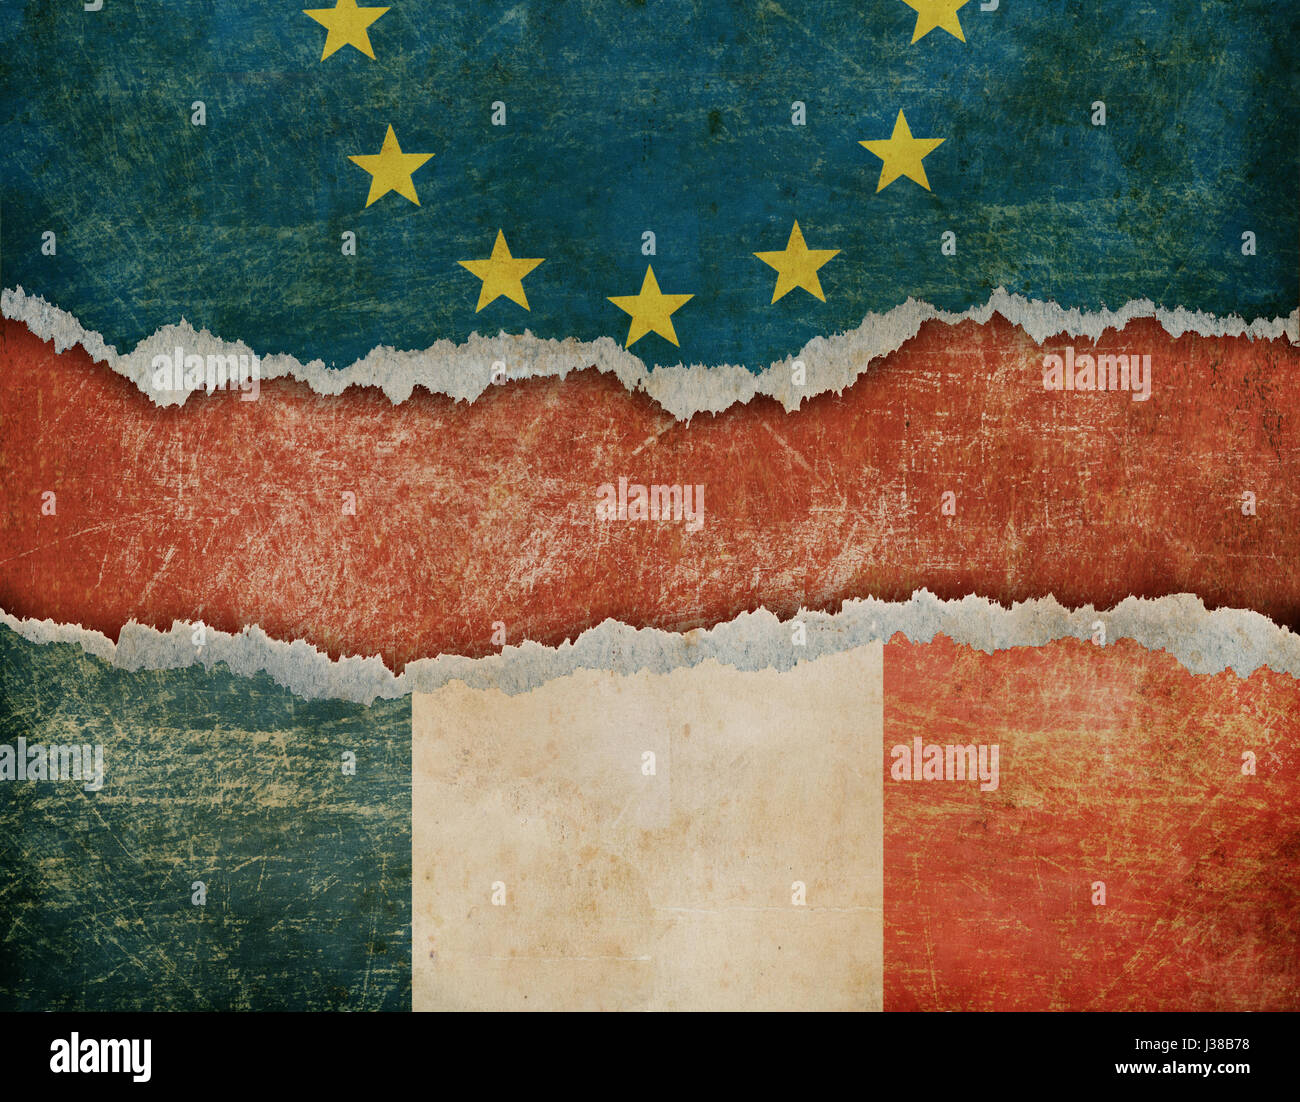 Possible France withdrawal from European union Frexit concept 3d illustration - Stock Image